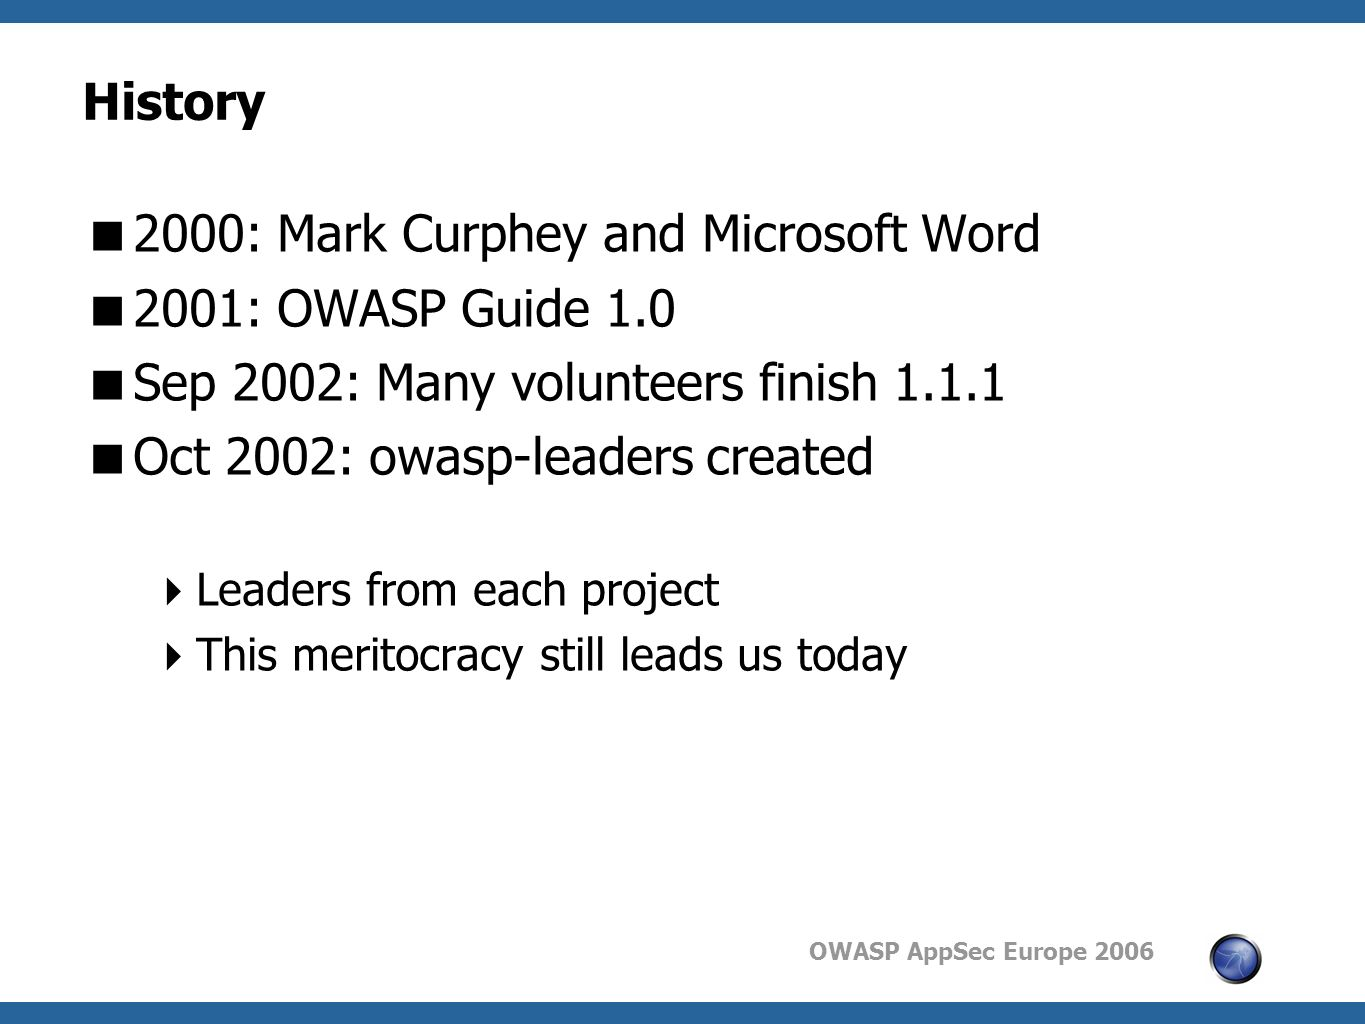 OWASP AppSec Europe 2006 History  2000: Mark Curphey and Microsoft Word  2001: OWASP Guide 1.0  Sep 2002: Many volunteers finish  Oct 2002: owasp-leaders created  Leaders from each project  This meritocracy still leads us today